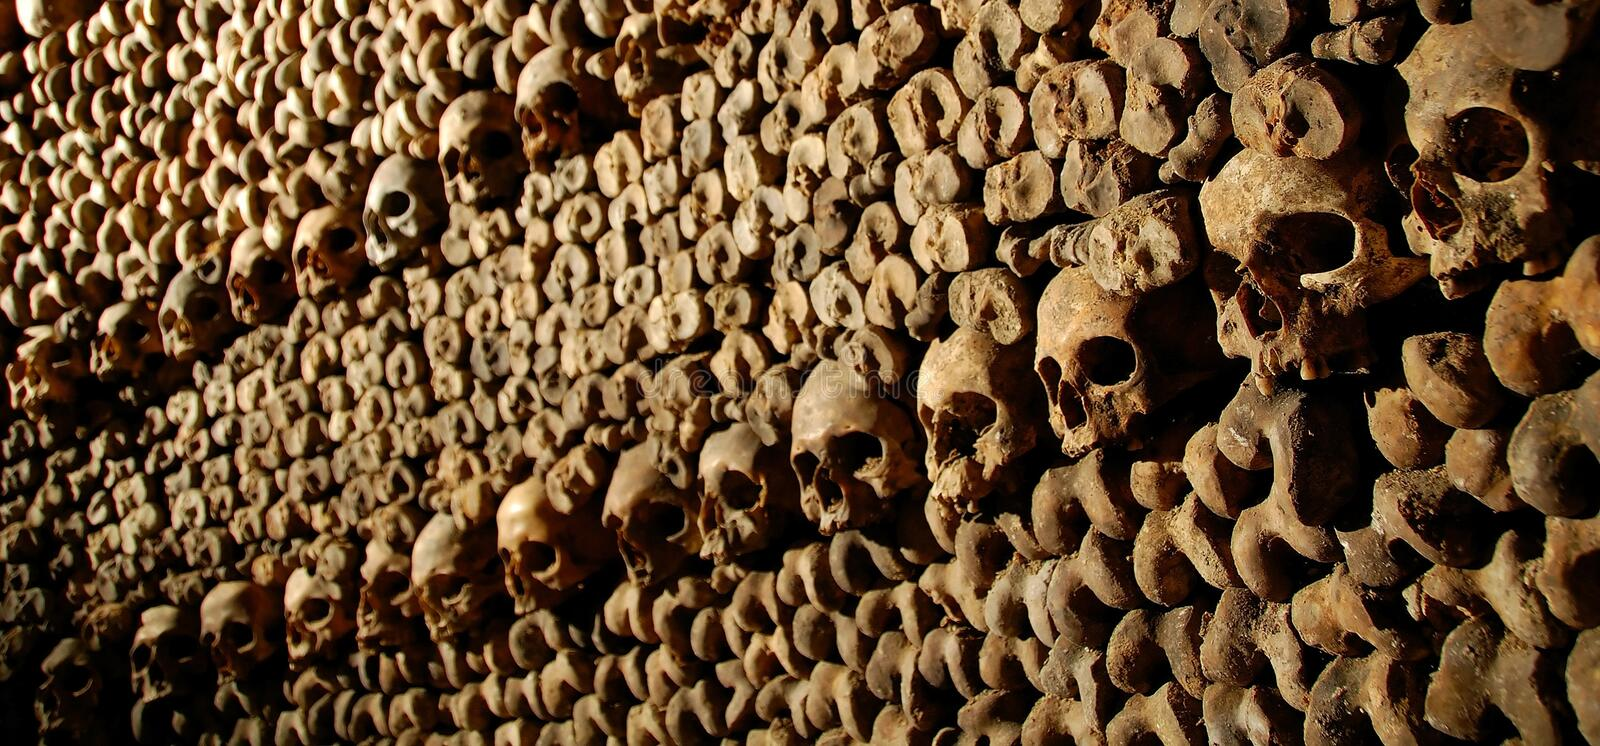 catacombes les obrazy royalty free